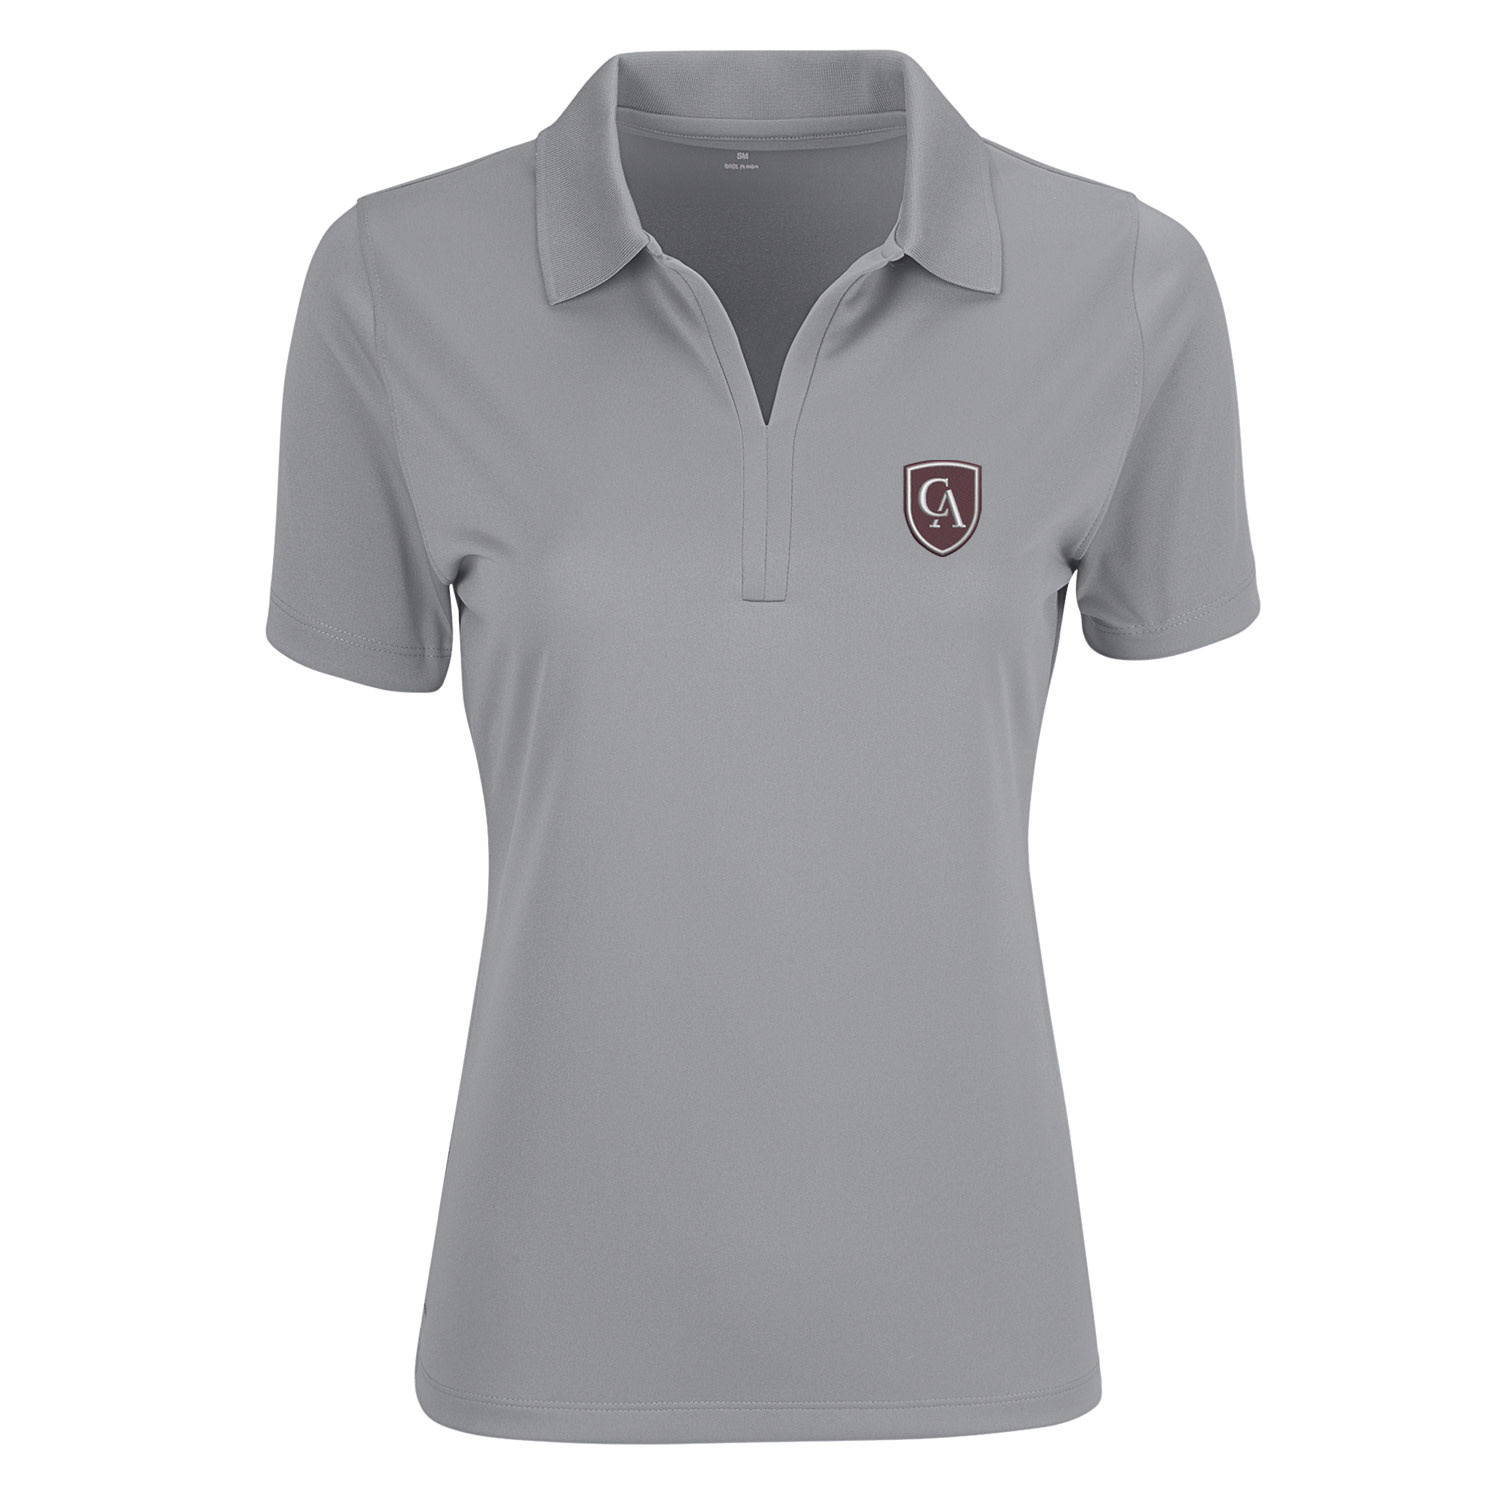 Vantage Vansport Women's V-Tech Performance Polo